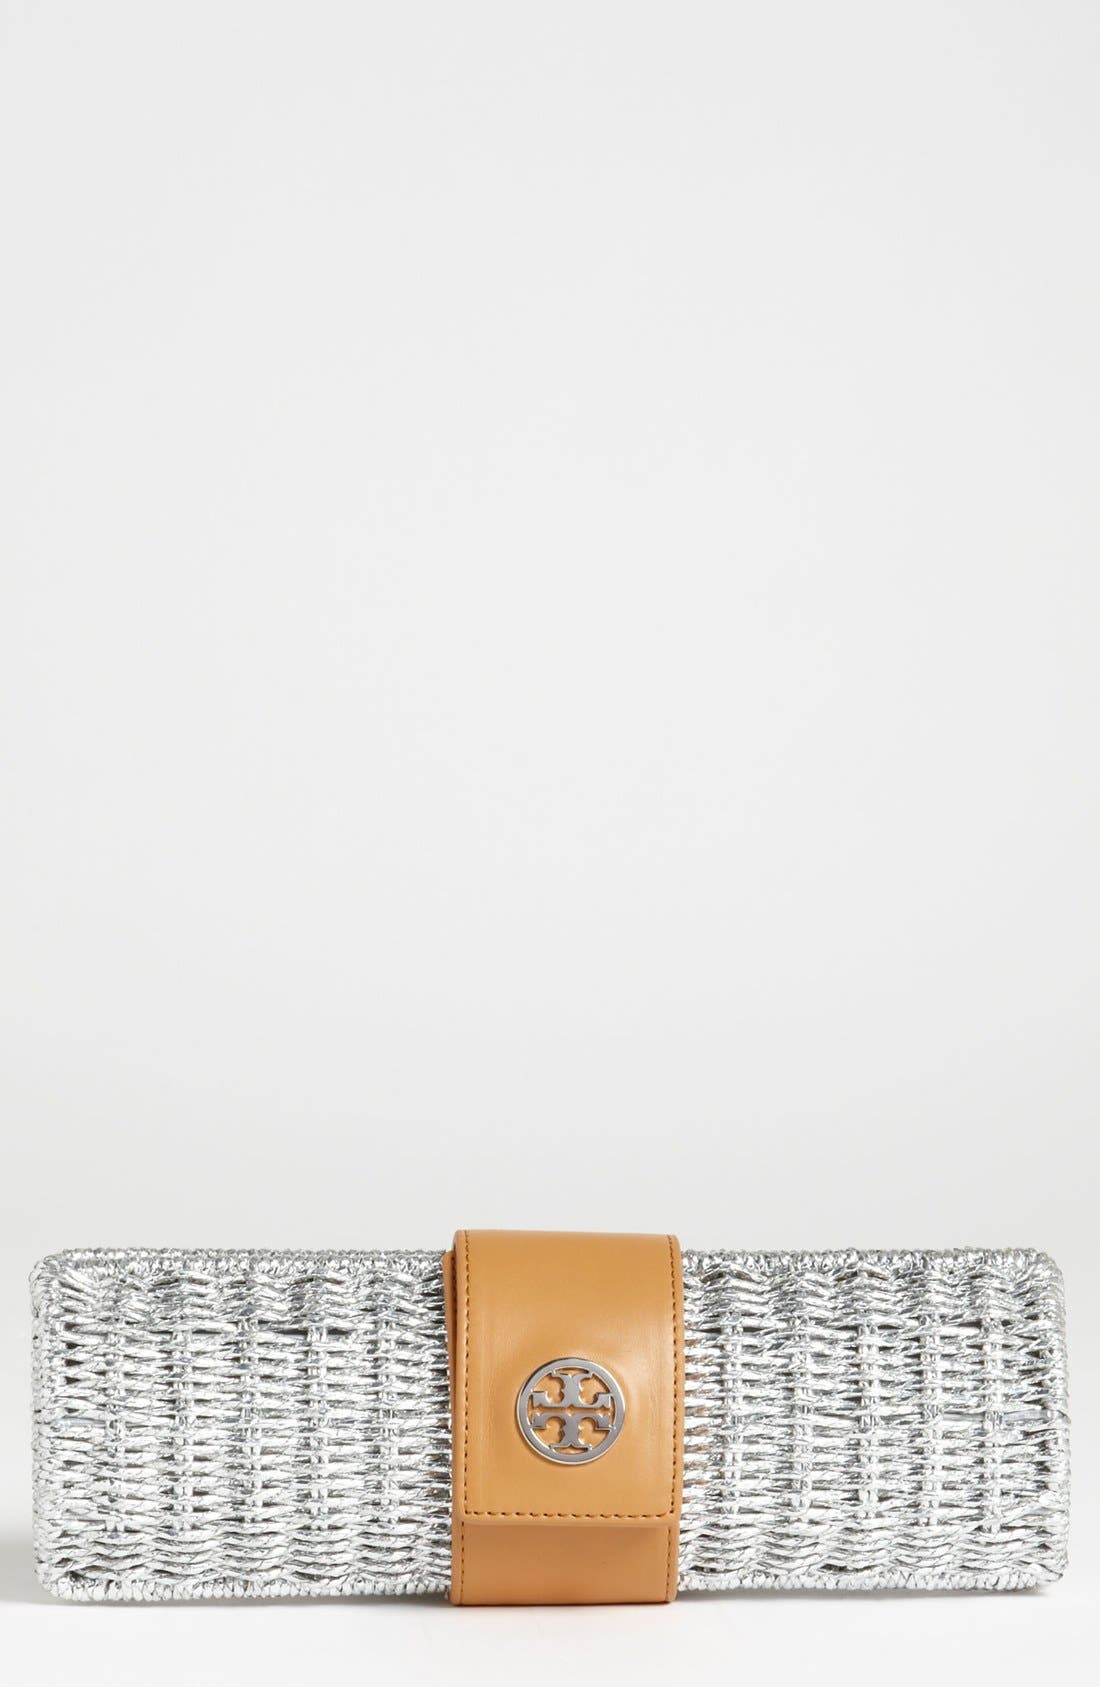 Alternate Image 1 Selected - Tory Burch 'Chunky' Straw Clutch